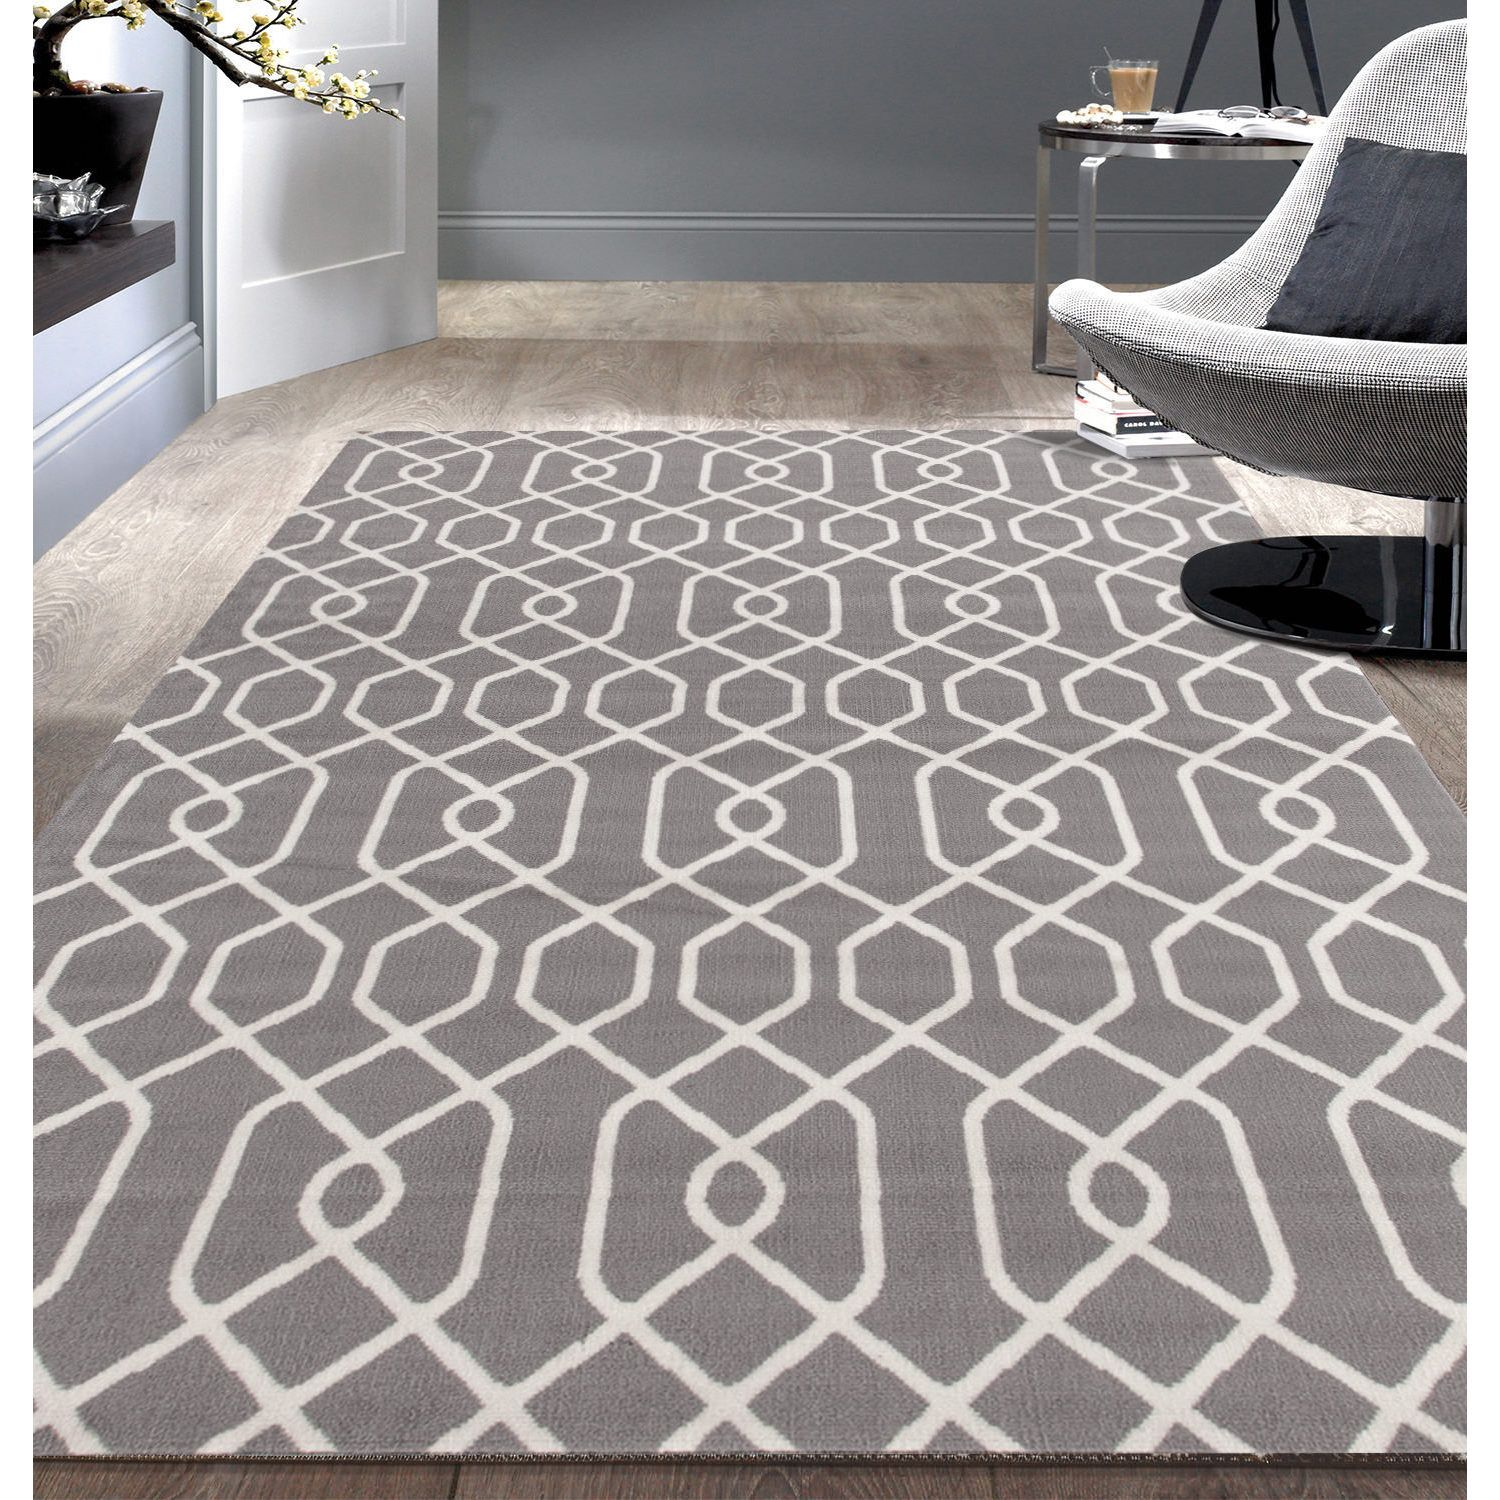 norwalk bedroom ivory area guy allmodern s rugs pin bashian rug